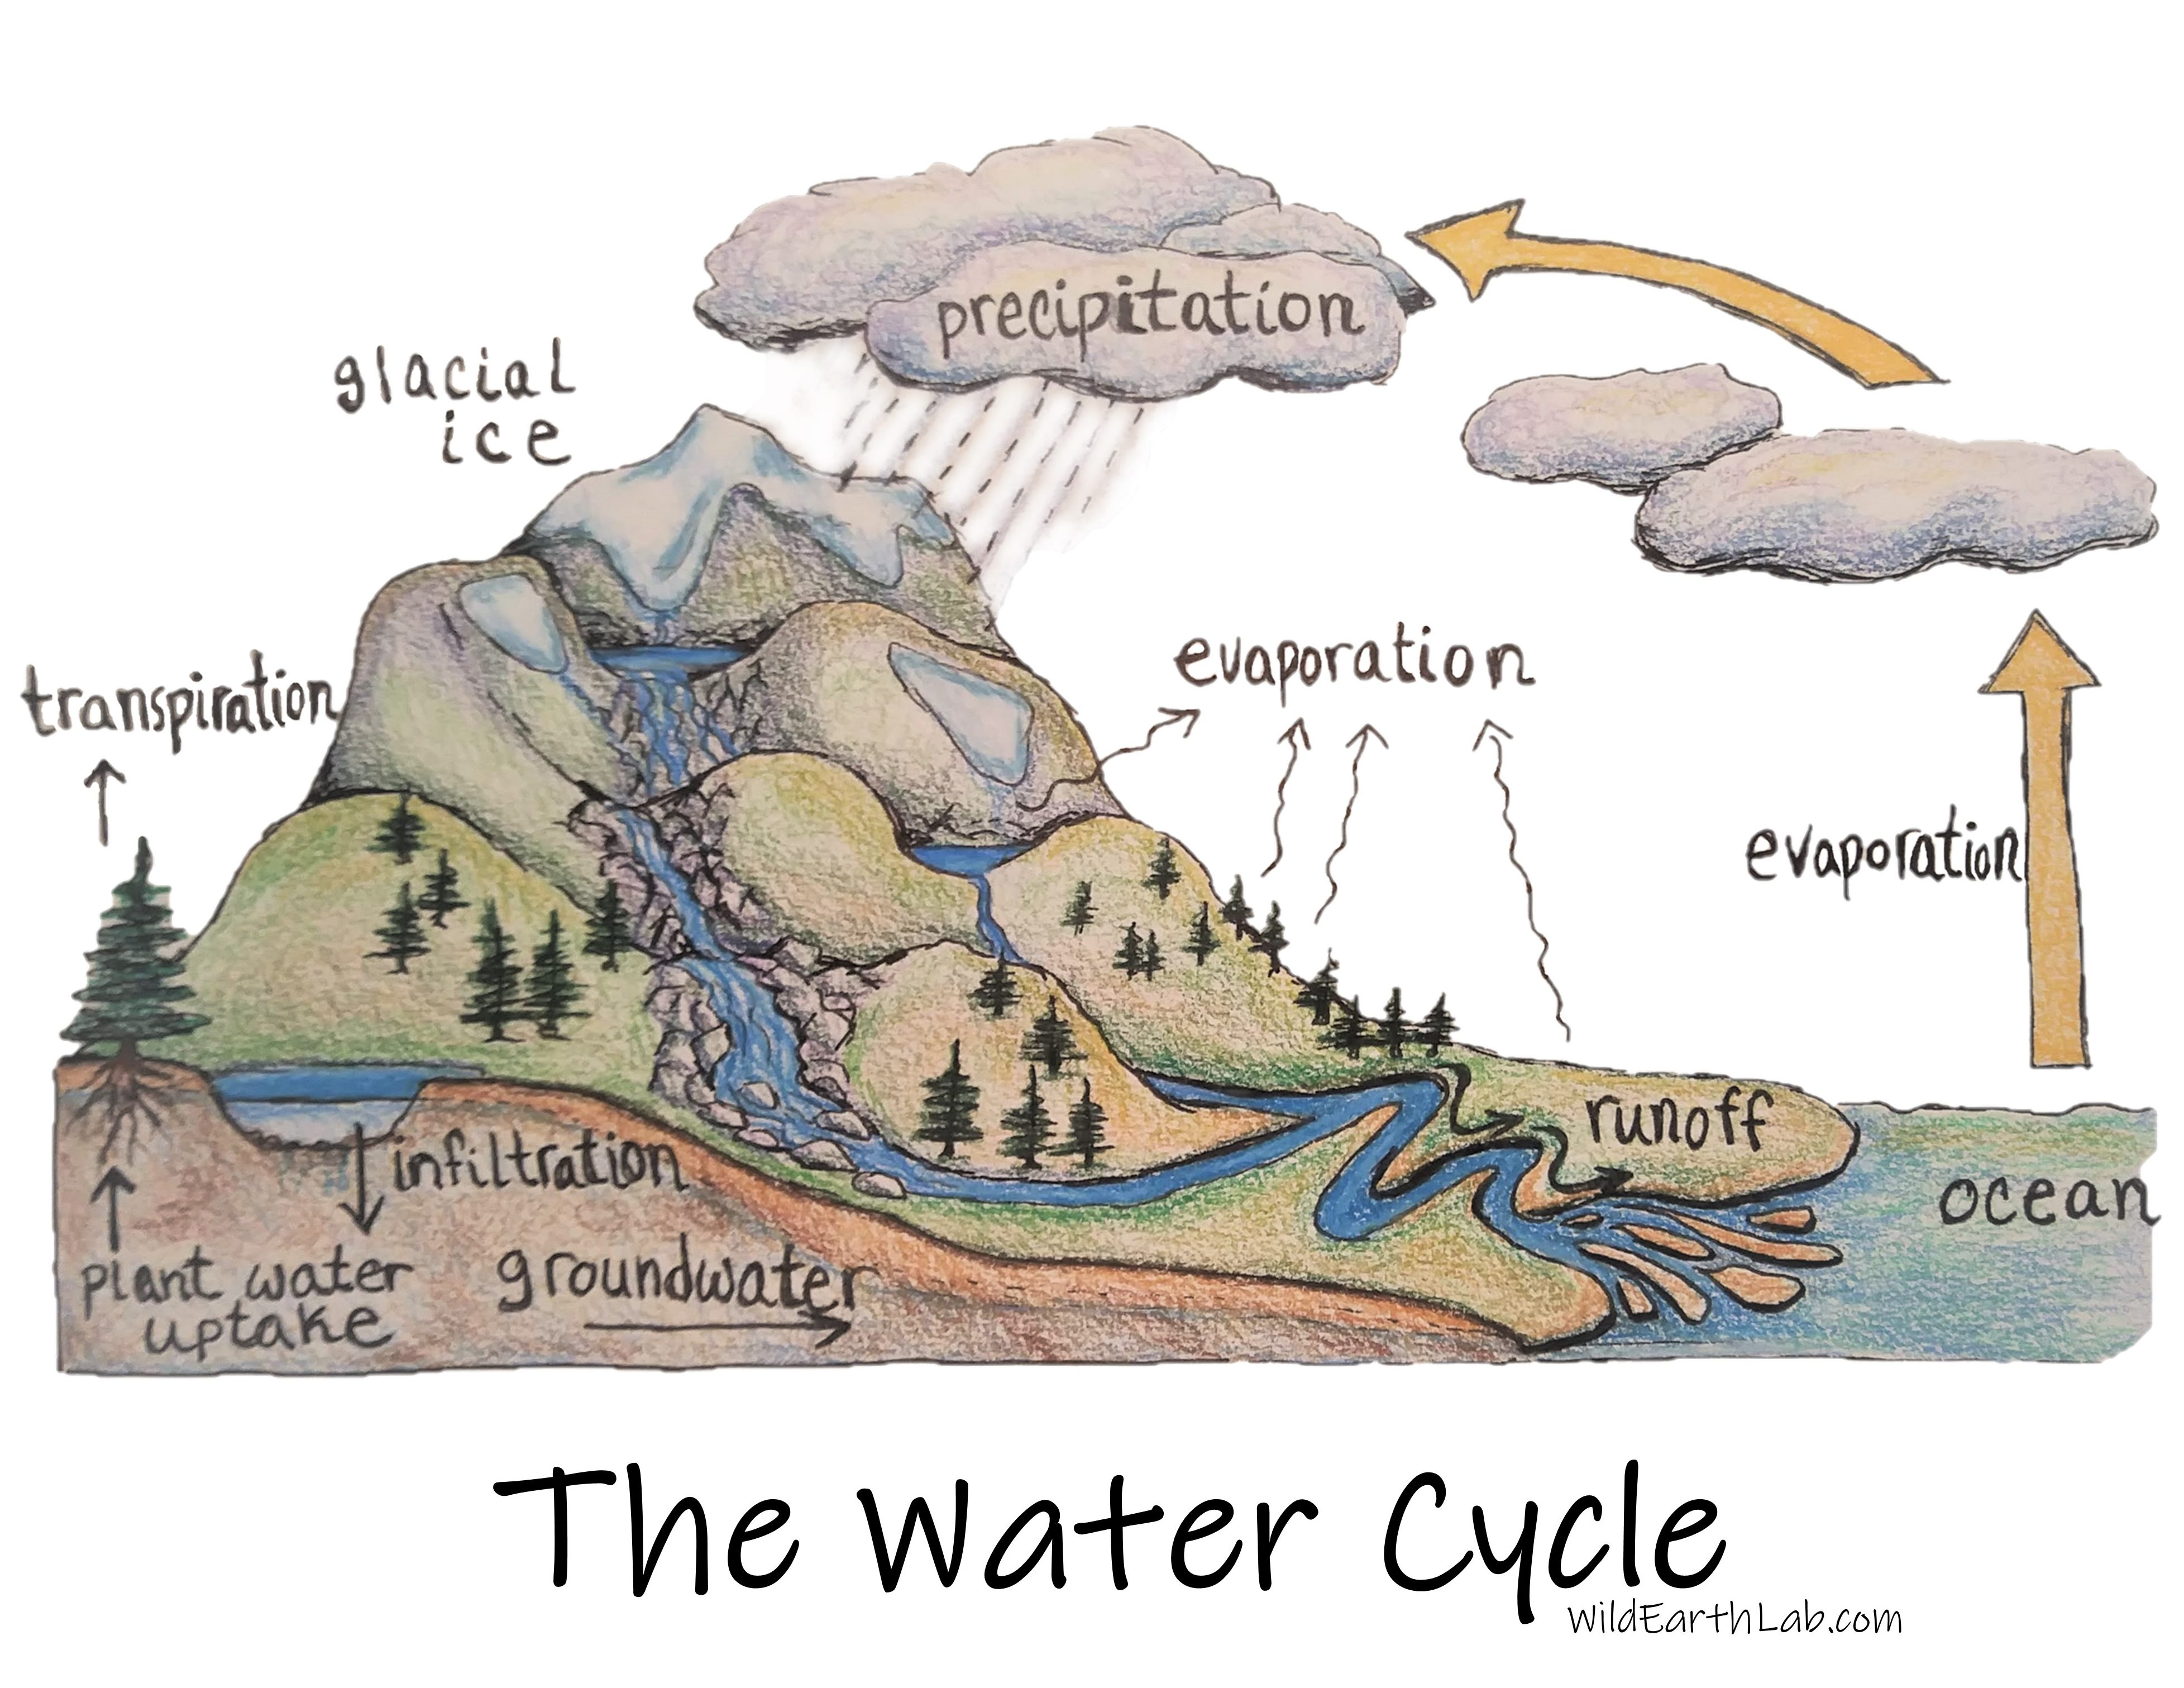 The water cycle diagram labeled drawing, hand-drawn with transpiration and infiltration of groundwater.